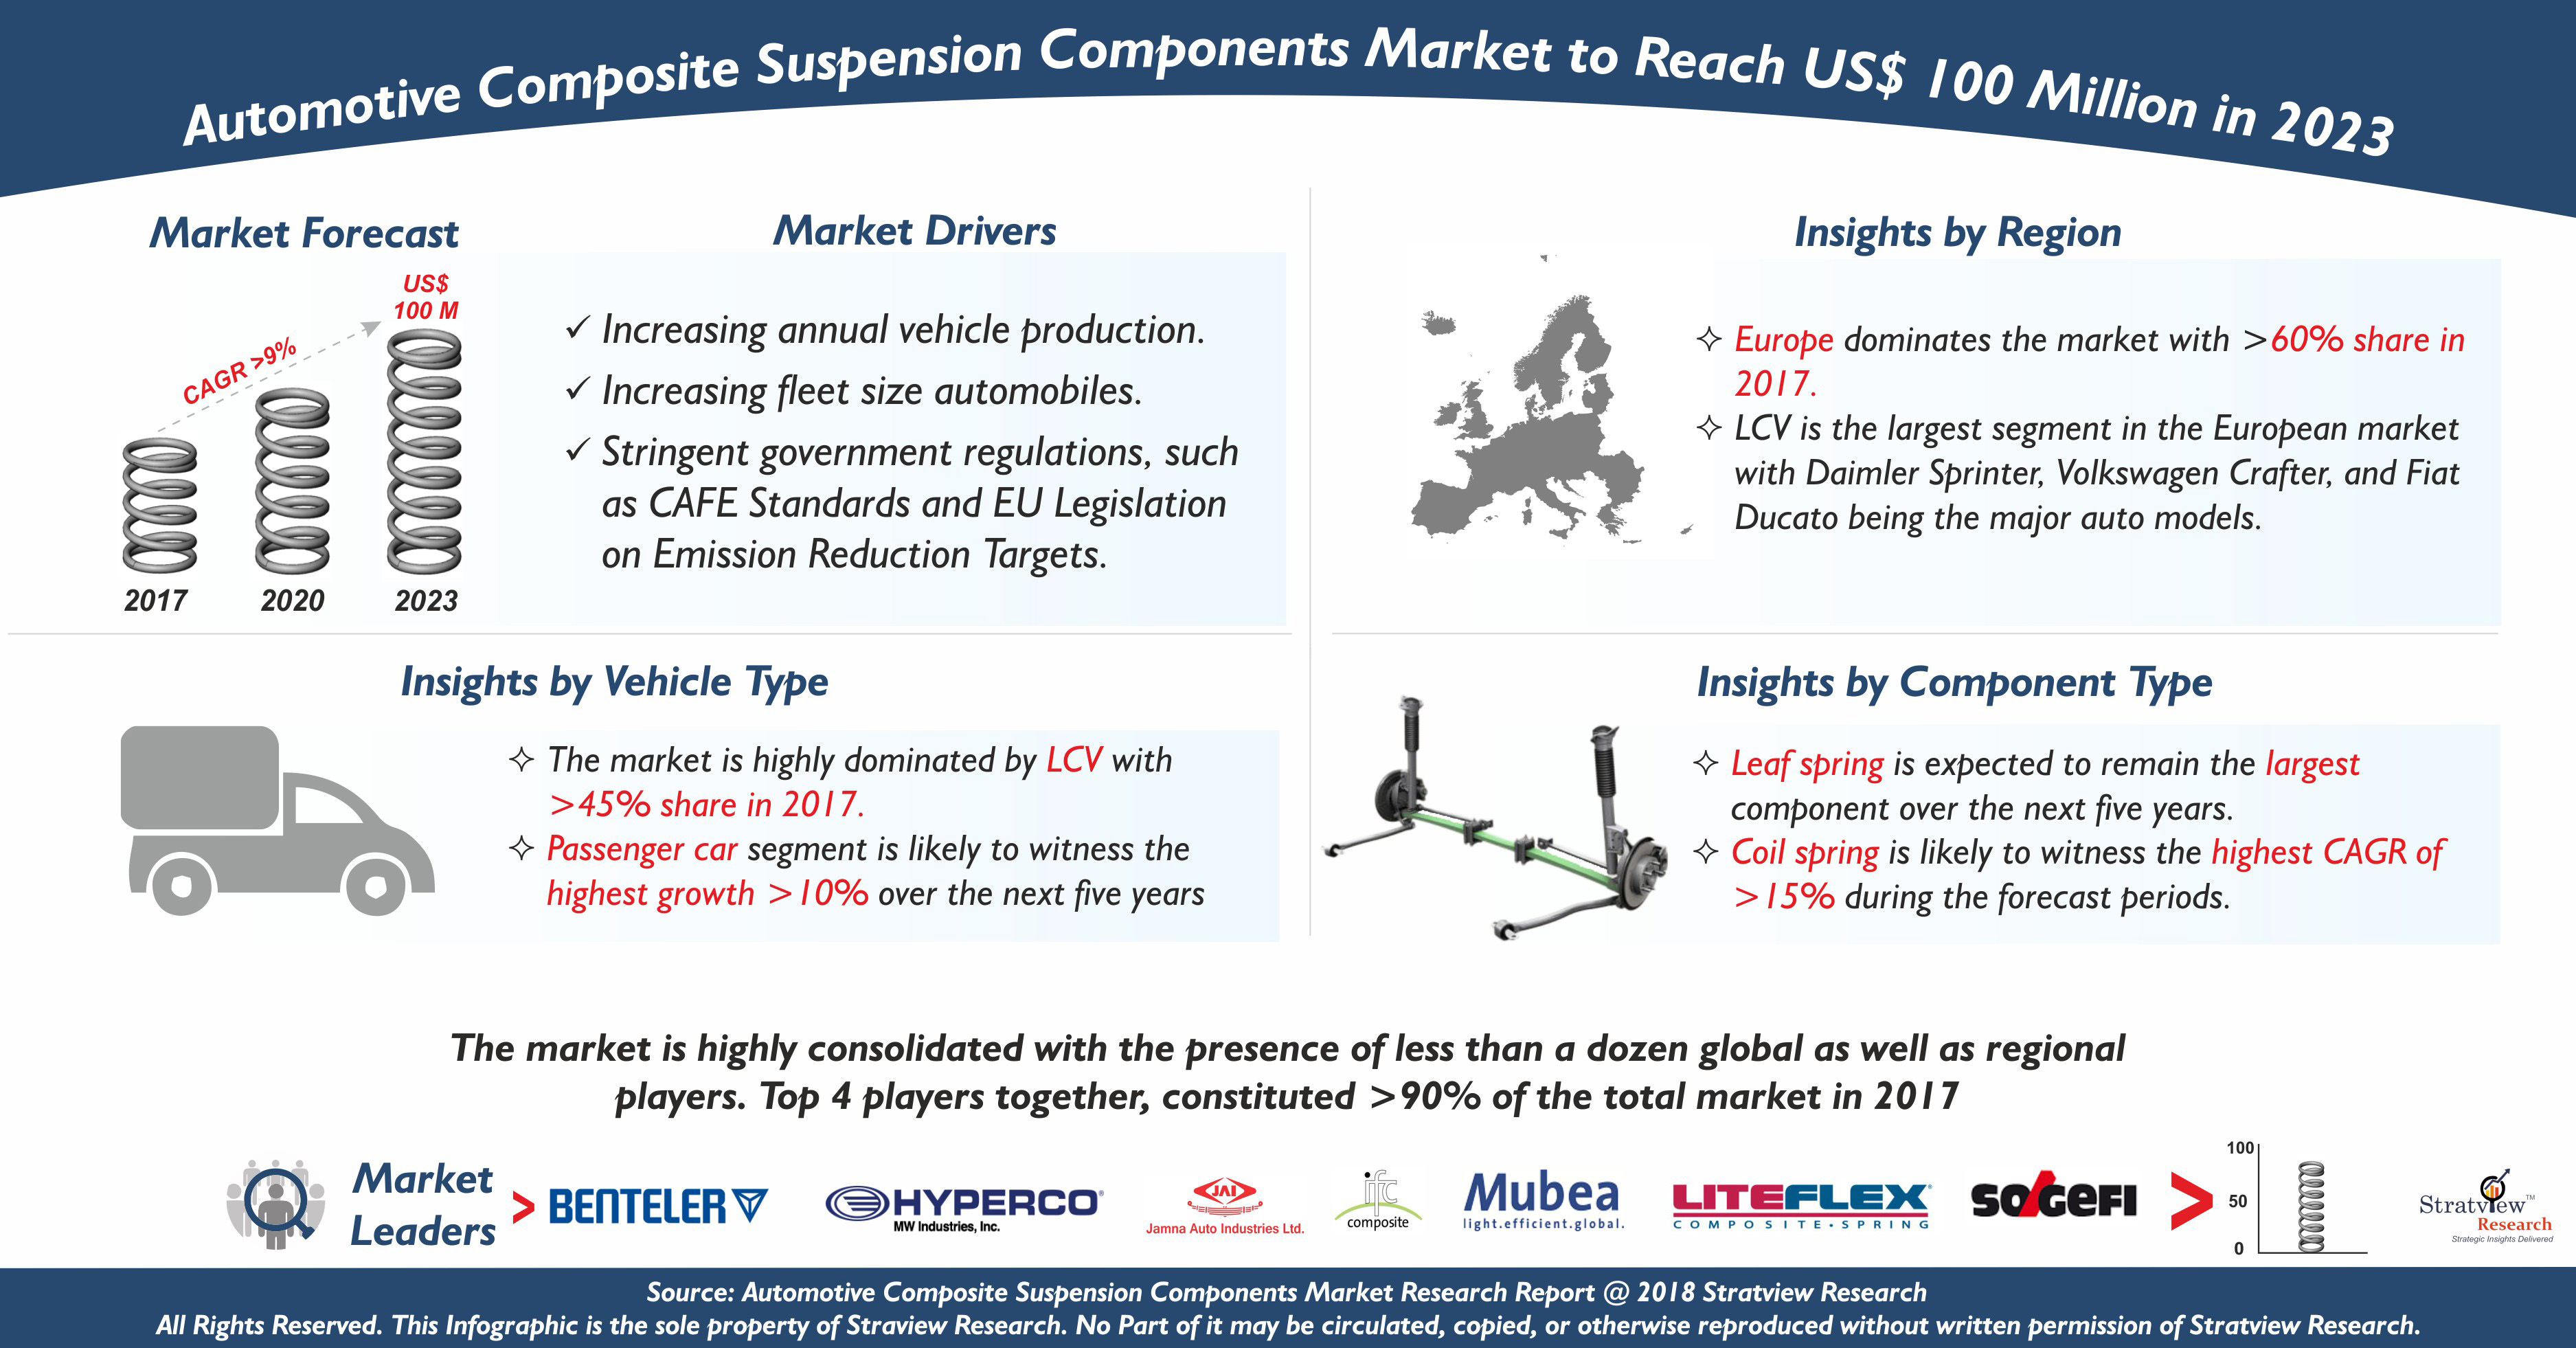 Automotive Composite Suspension Components Market